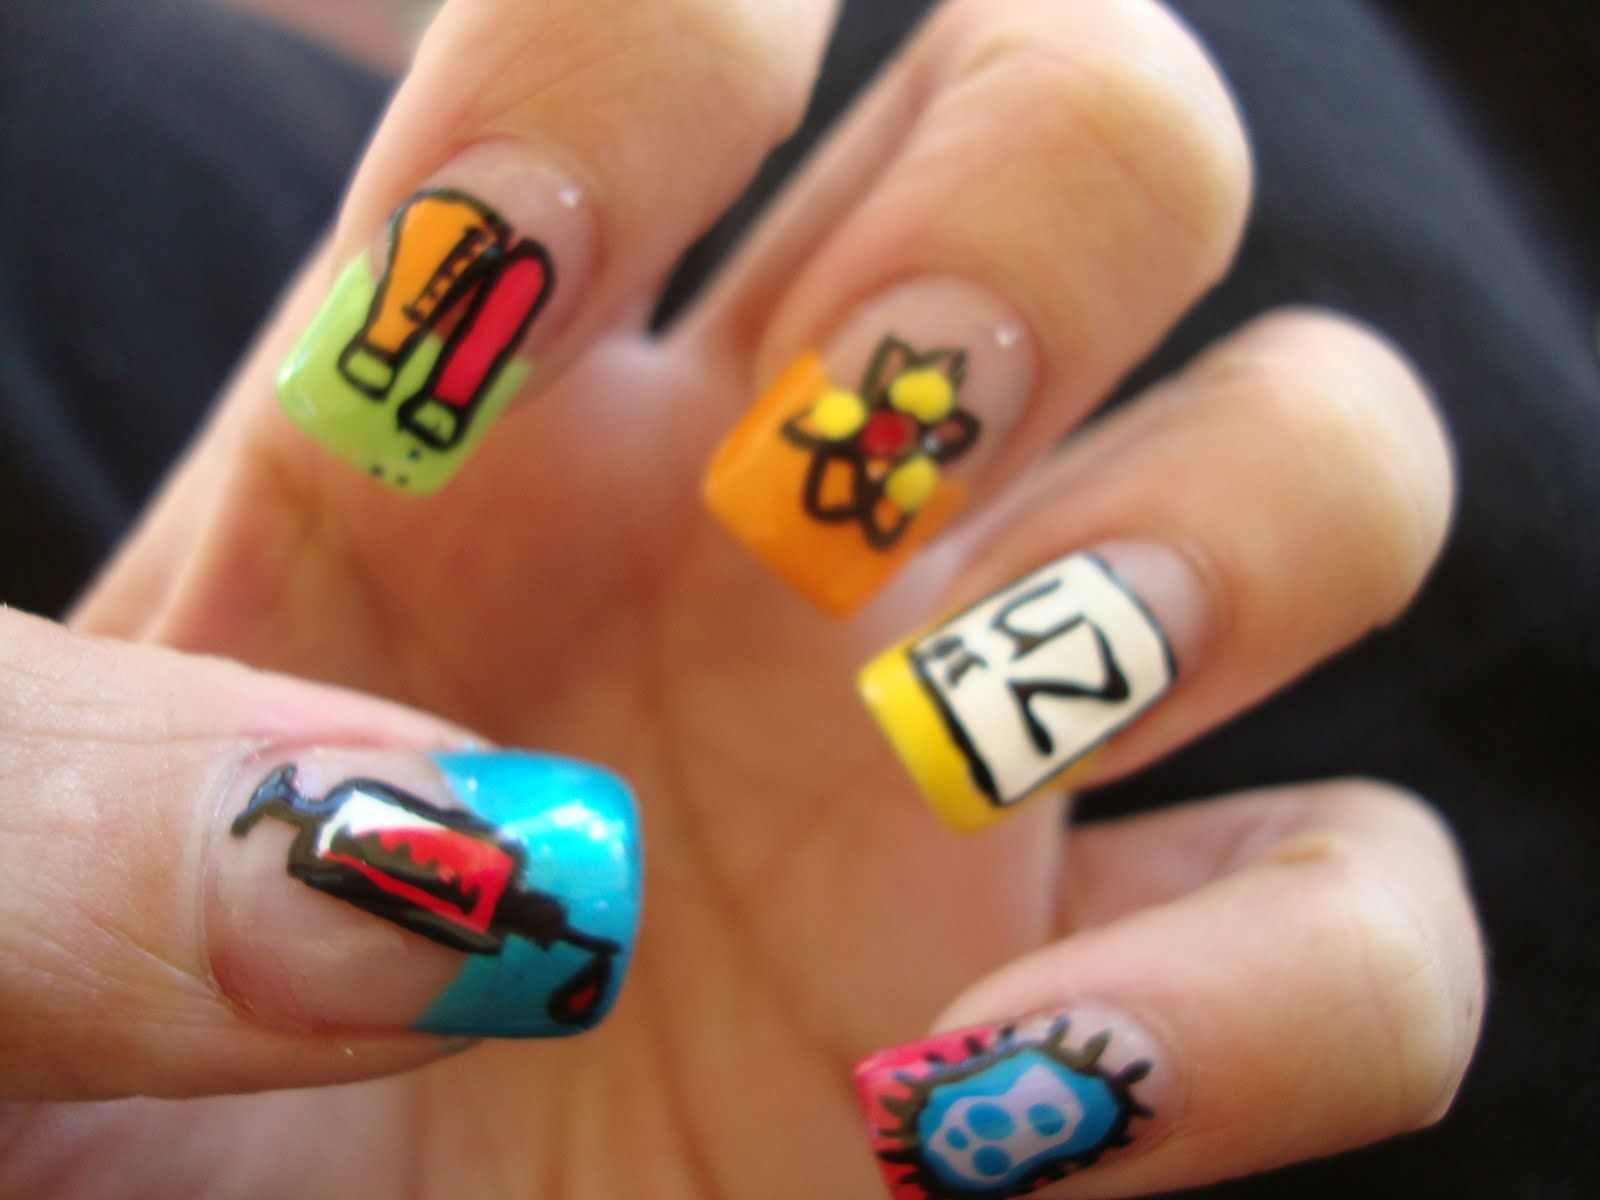 Hot Designs Nail Art Ideas 65 lovely summer nail art ideas Science Nails Geeky Lil Scientist Lady I Bring You The Science Of Cartoon Nail Designshot